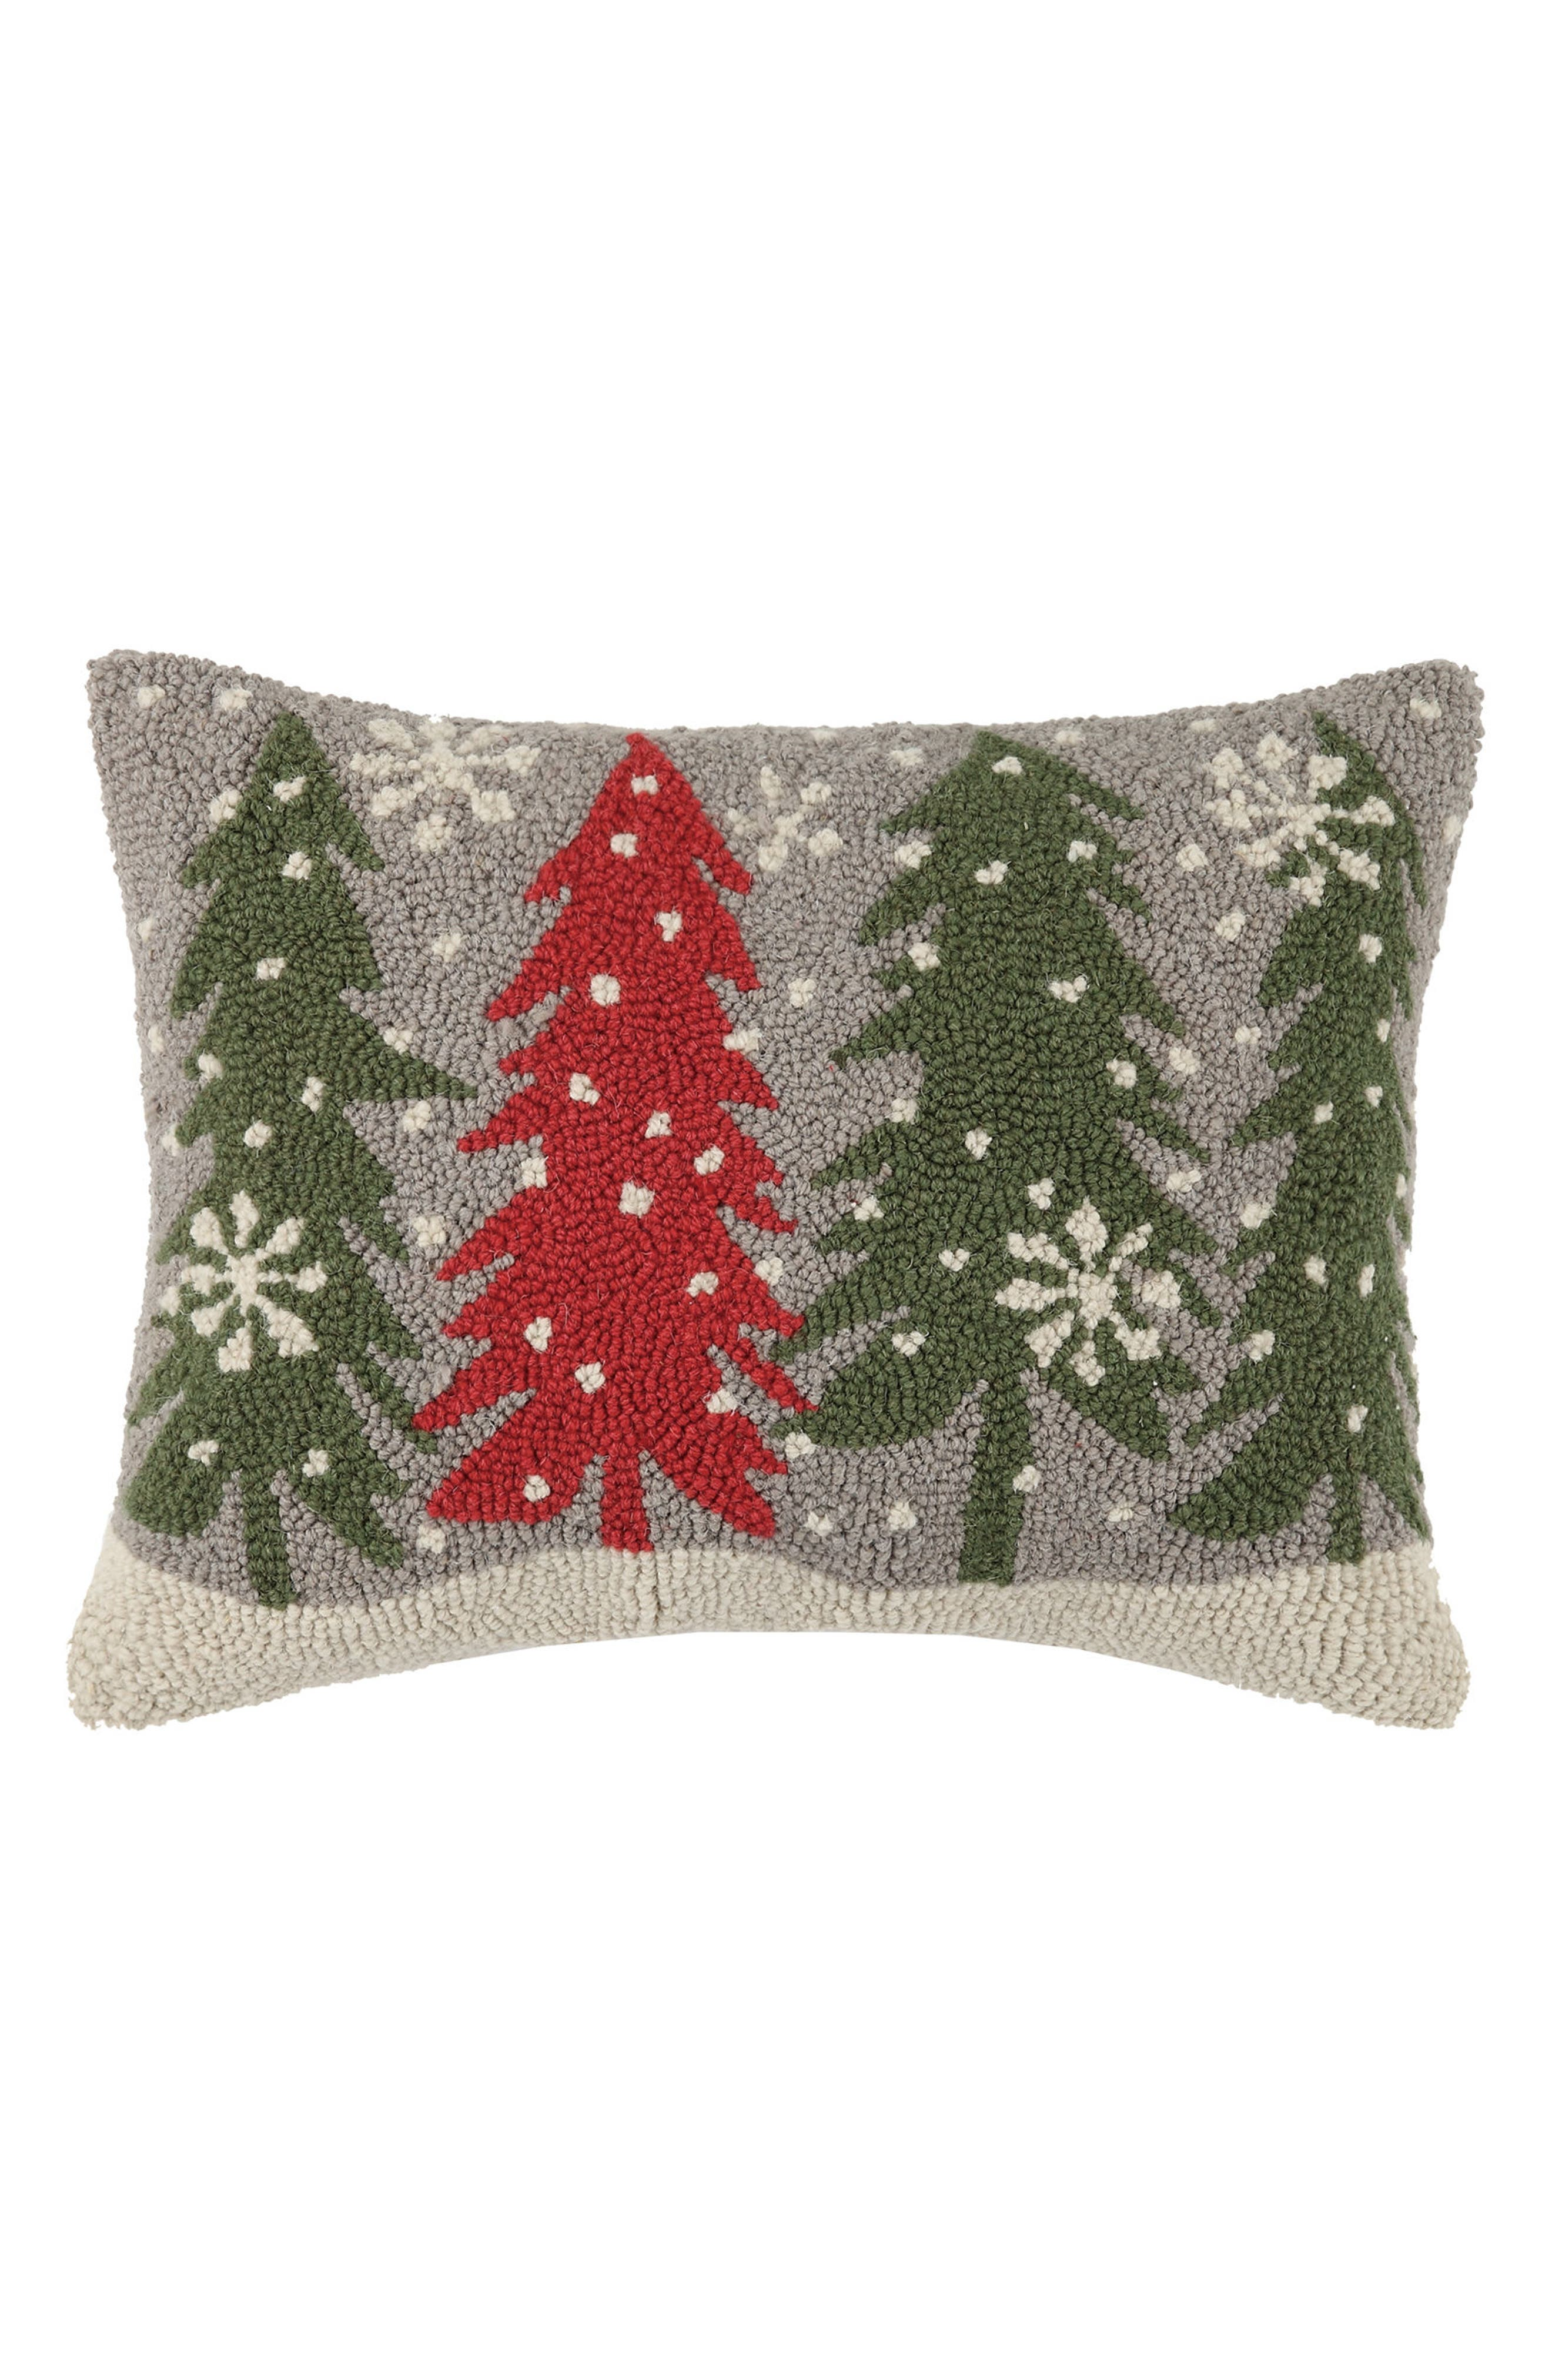 Main Image - Peking Handicraft Trees with Snowflakes Hooked Accent Pillow